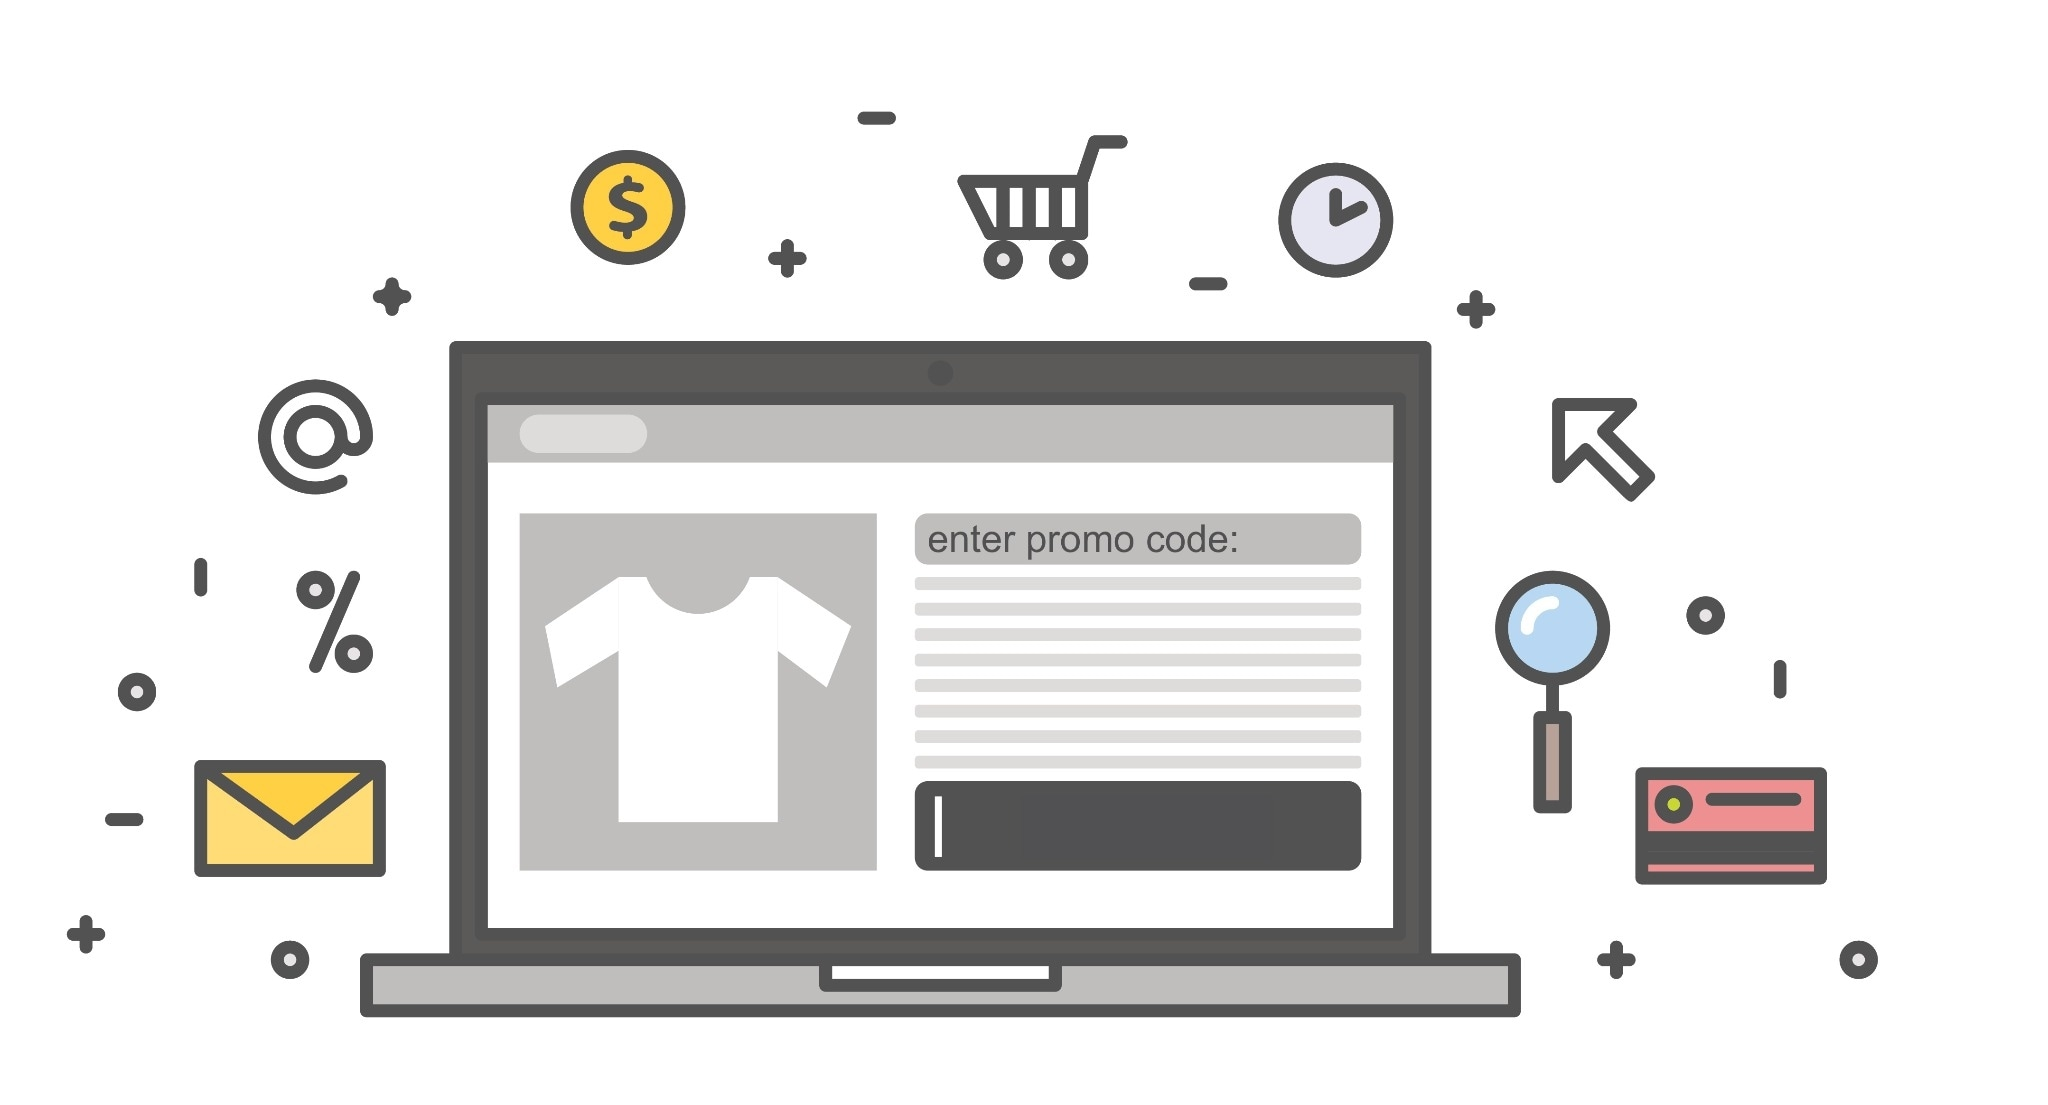 How the Coupon Pros Find Promo Codes